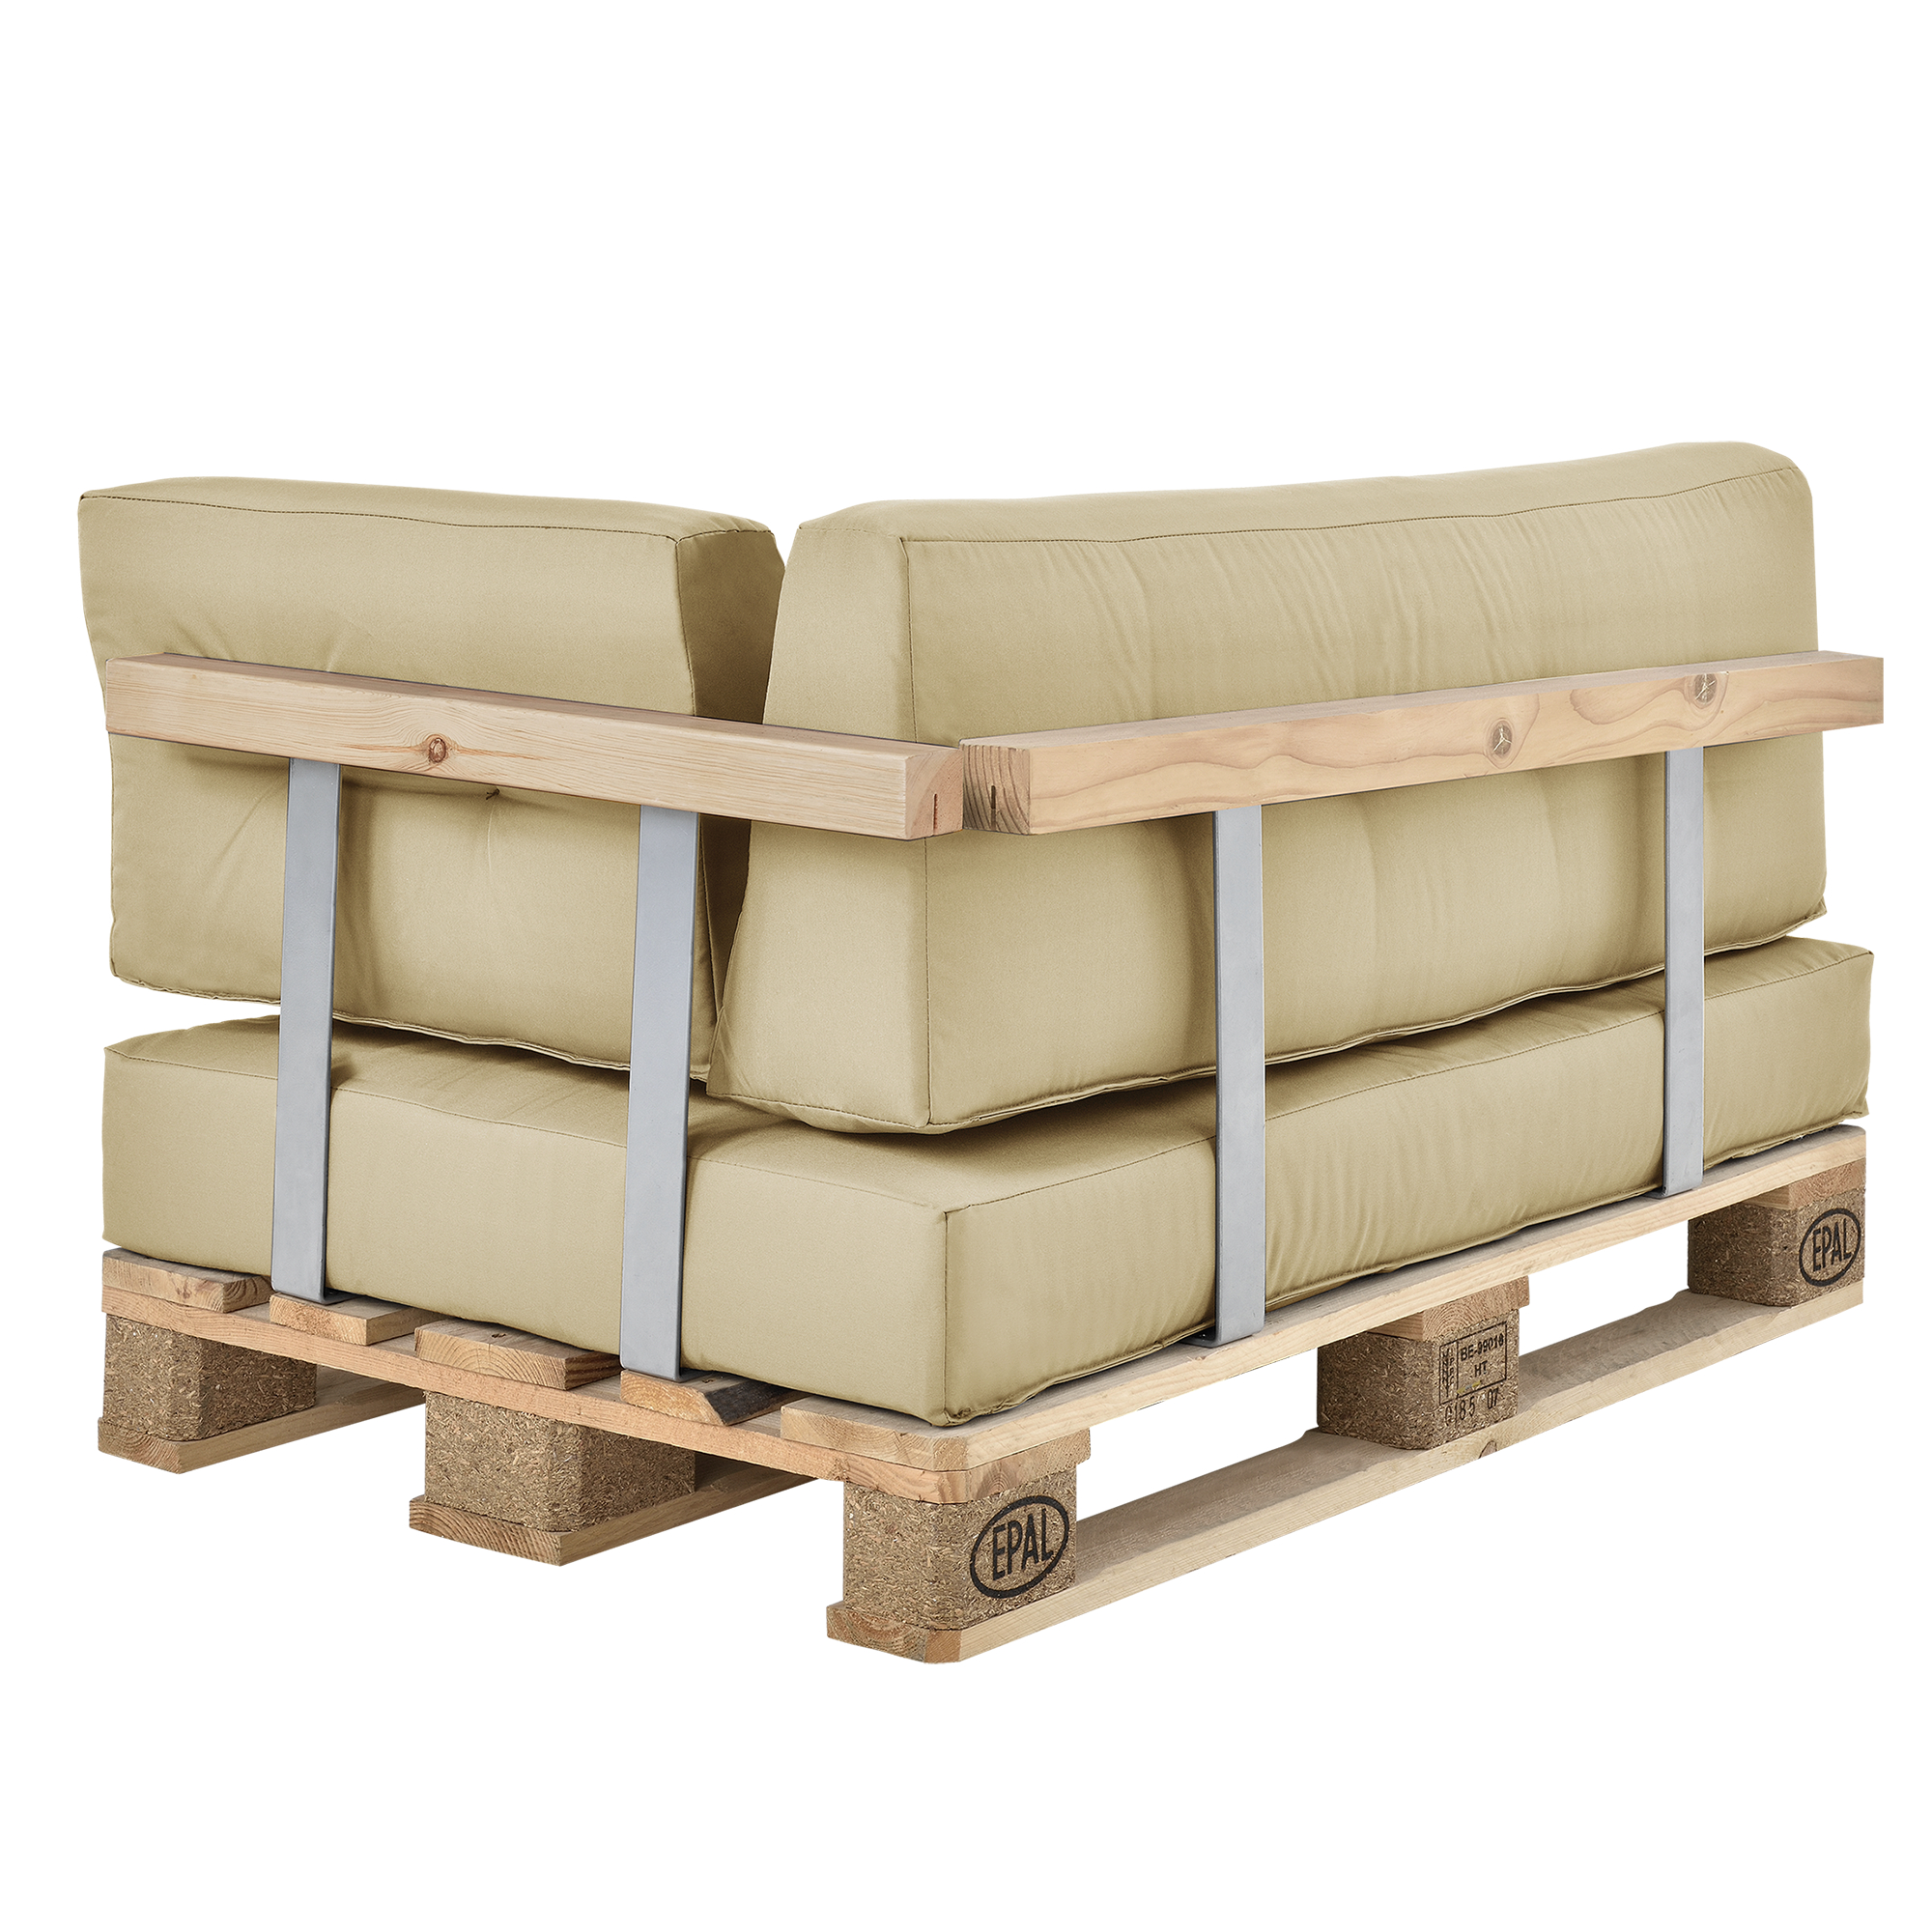 1x coussin de si ge canap palette in outdoor rembourrage canap ebay. Black Bedroom Furniture Sets. Home Design Ideas